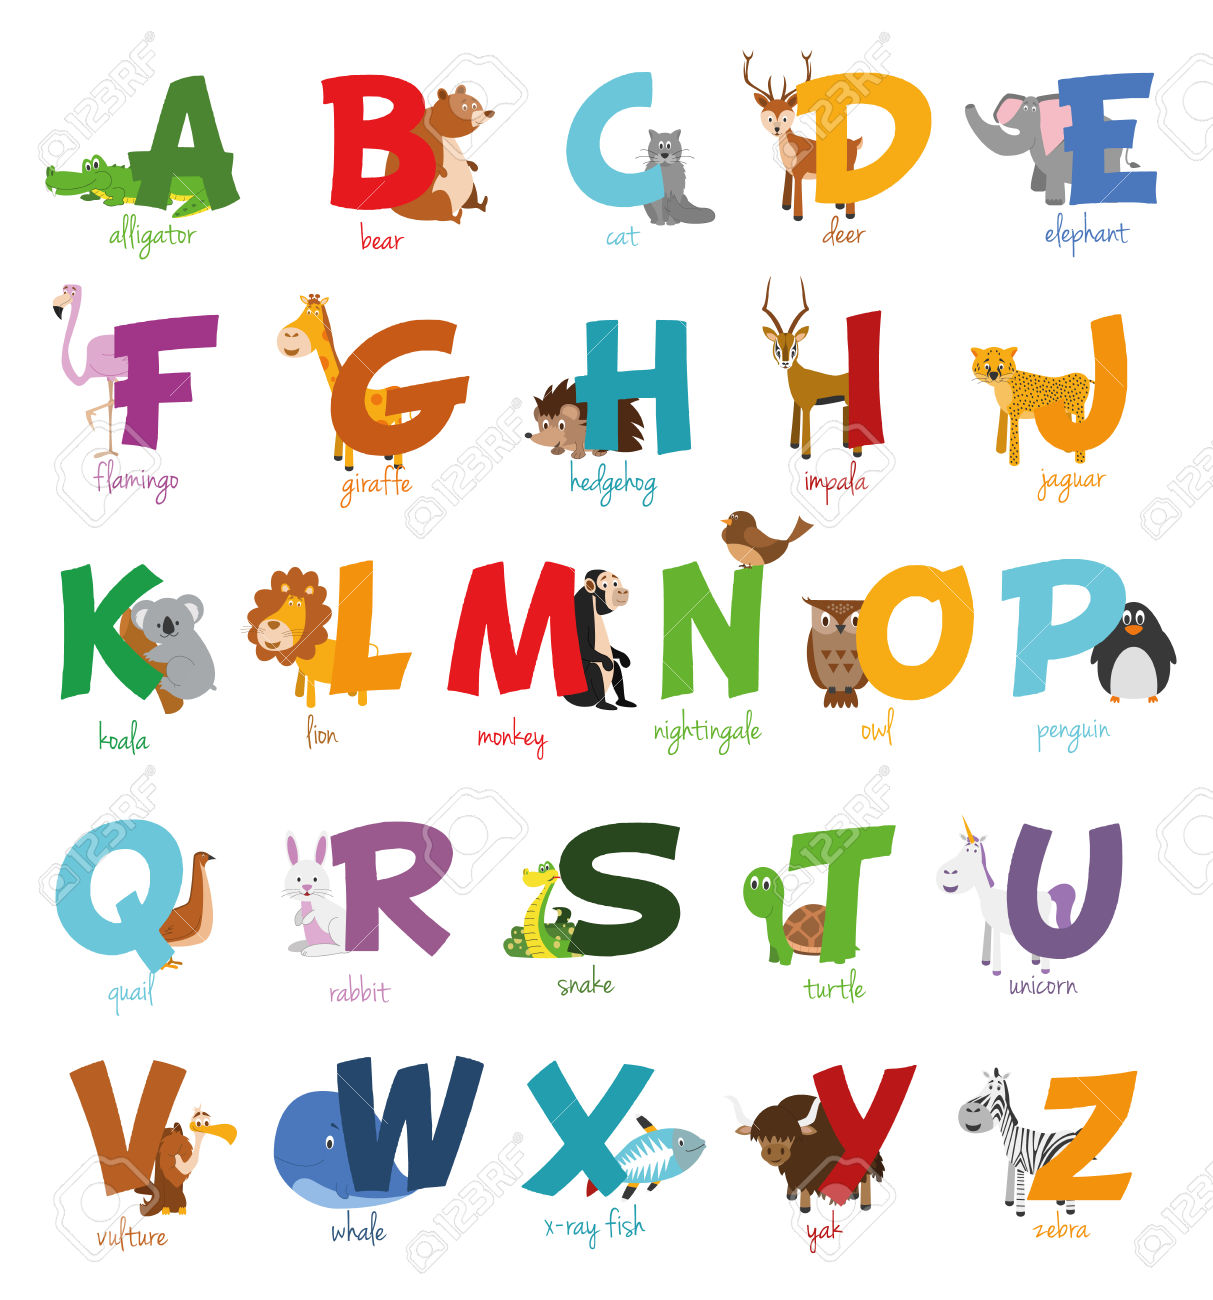 Cute Cartoon Illustrated Alphabet With Funny Zoo Animals. Royalty.